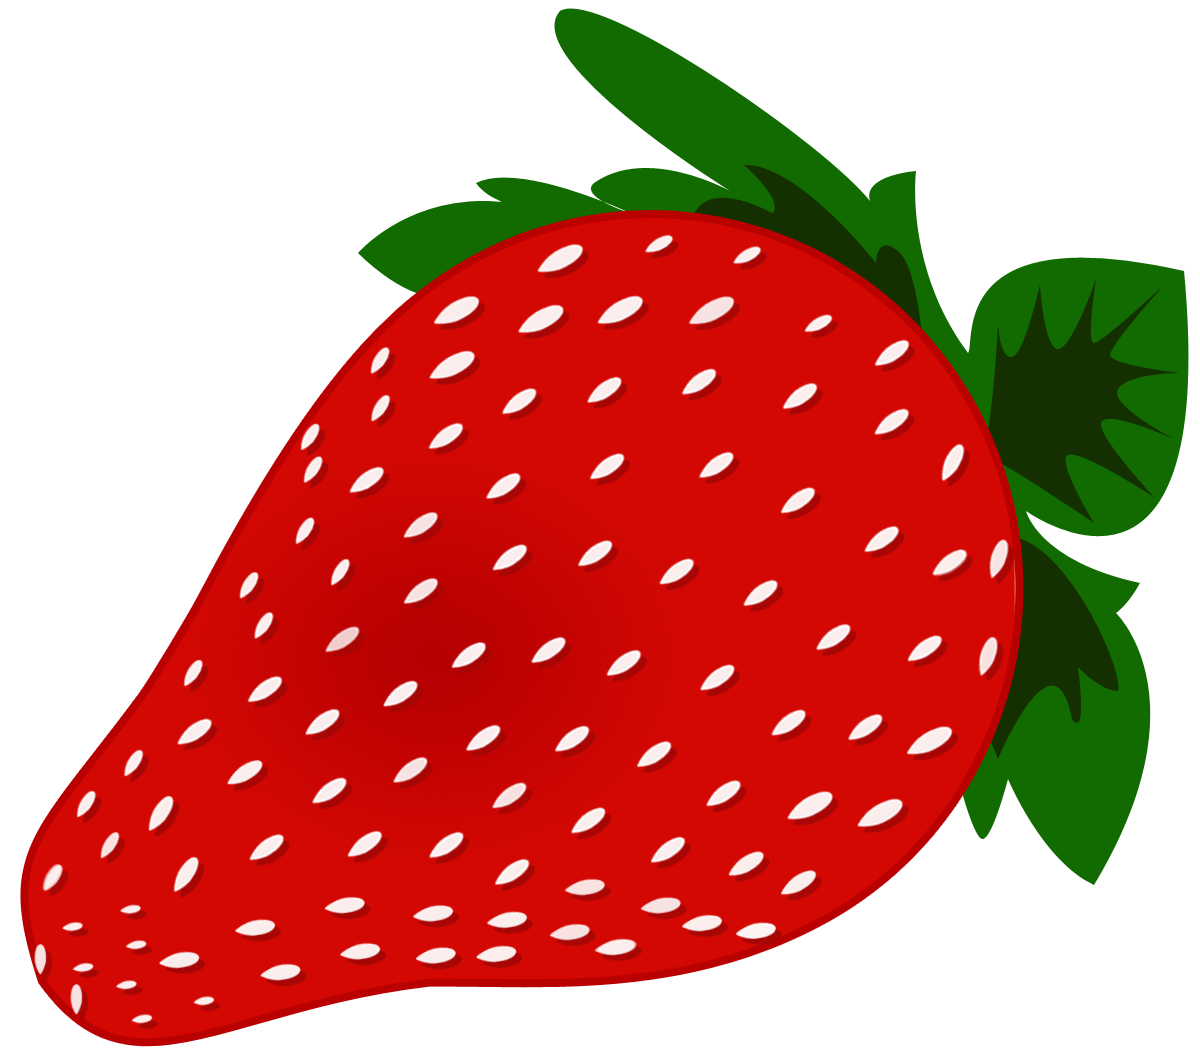 Free Strawberry Clipart Transparent Background, Download.